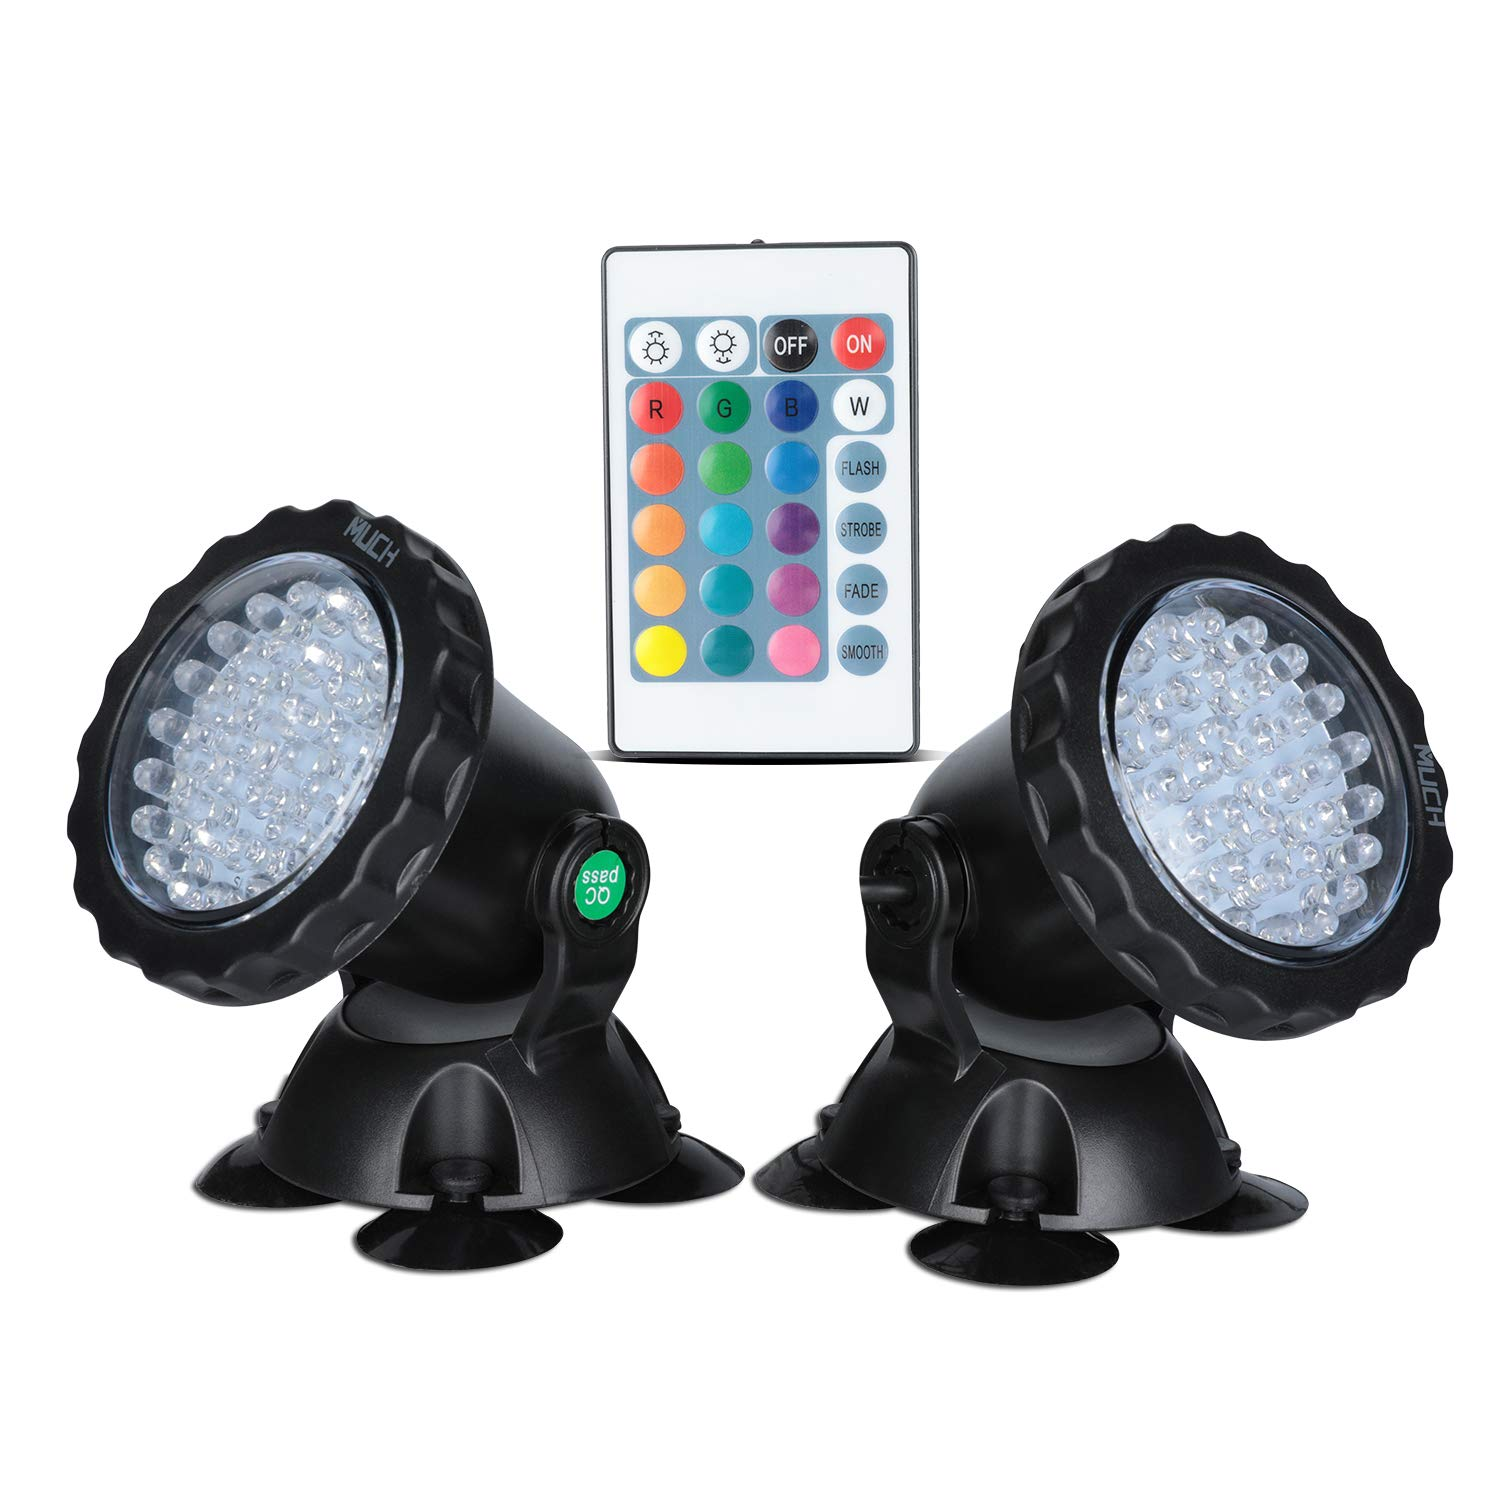 MUCH Underwater Pond Light Remote Control Waterproof IP 68 Submersible Spotlight with 36 LED Bulbs 5 W Multi-Color Spot Light for Aquarium Garden Pond Aquarium Tank Fountain Waterfall (Set of 2)